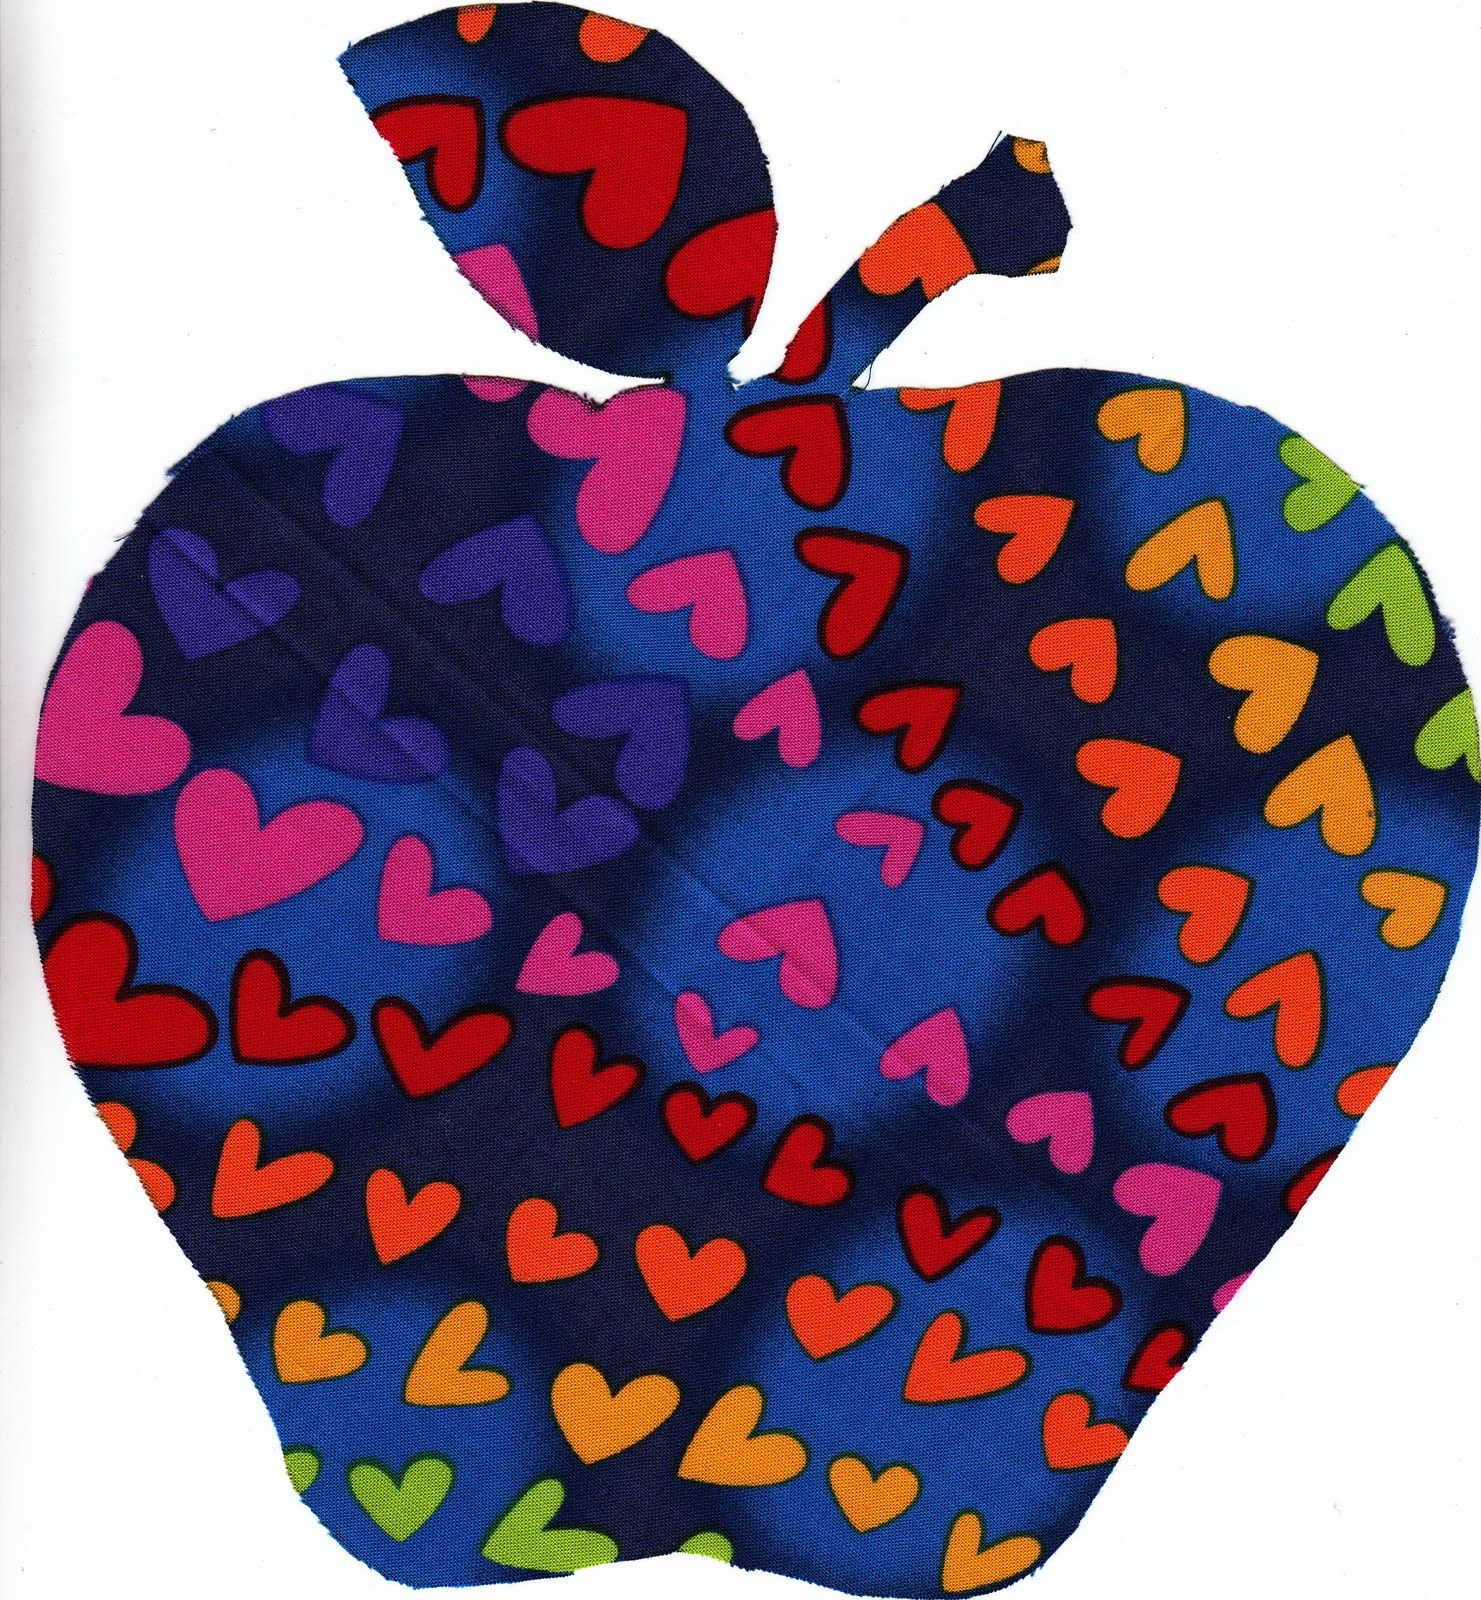 Pin by Bonnie Jones on Apple Clip Art | Pinterest